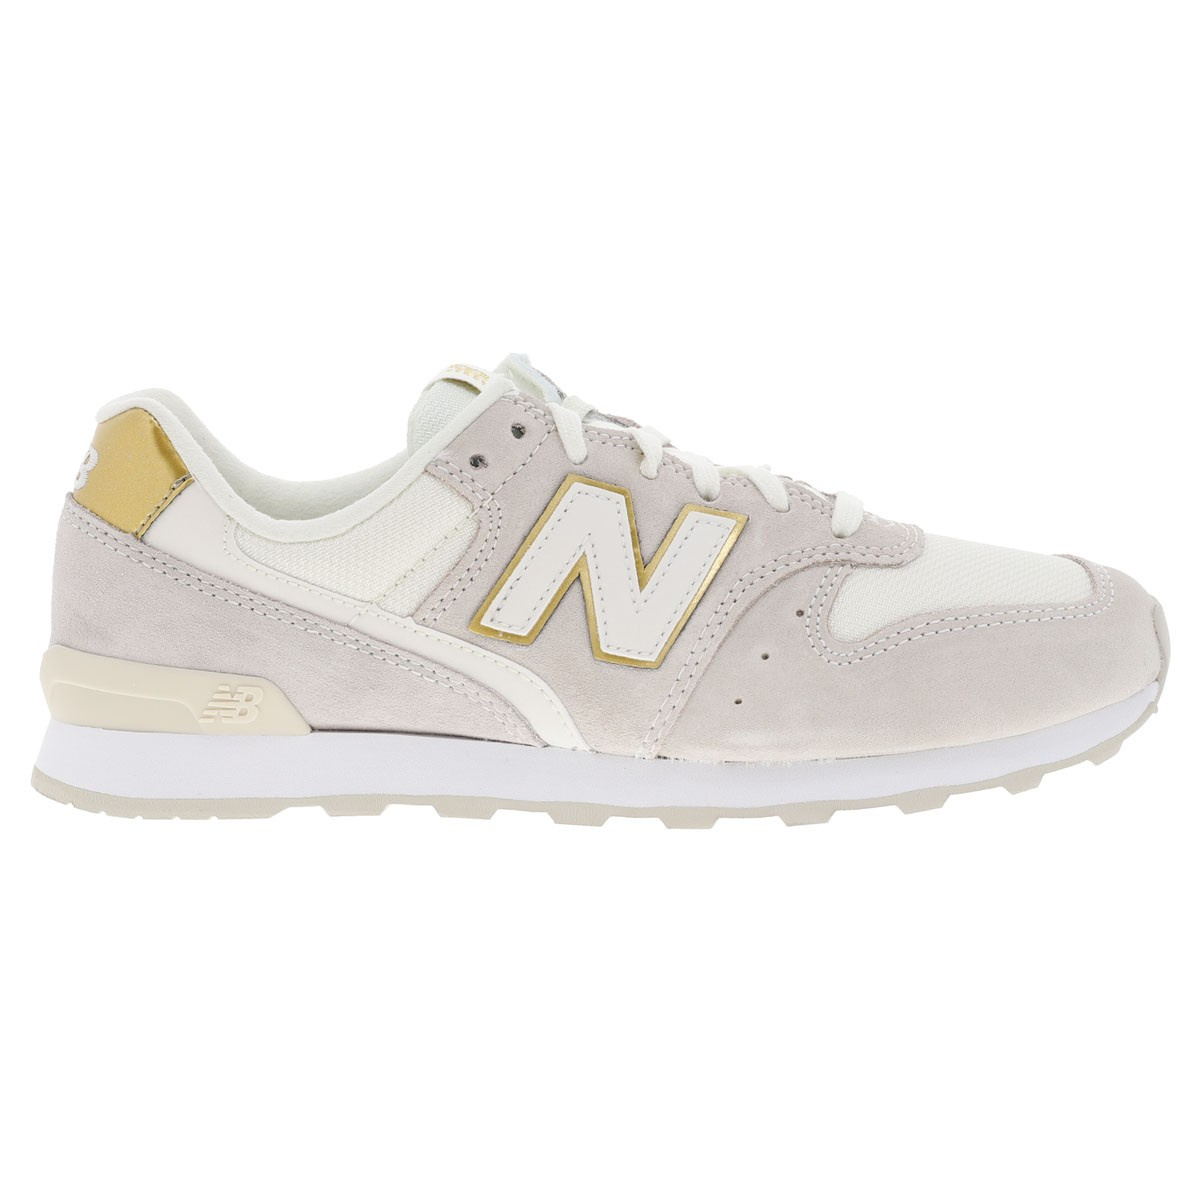 c0a91f05b5f0 Baskets Wr996 femme gris New Balance- CCV Mode